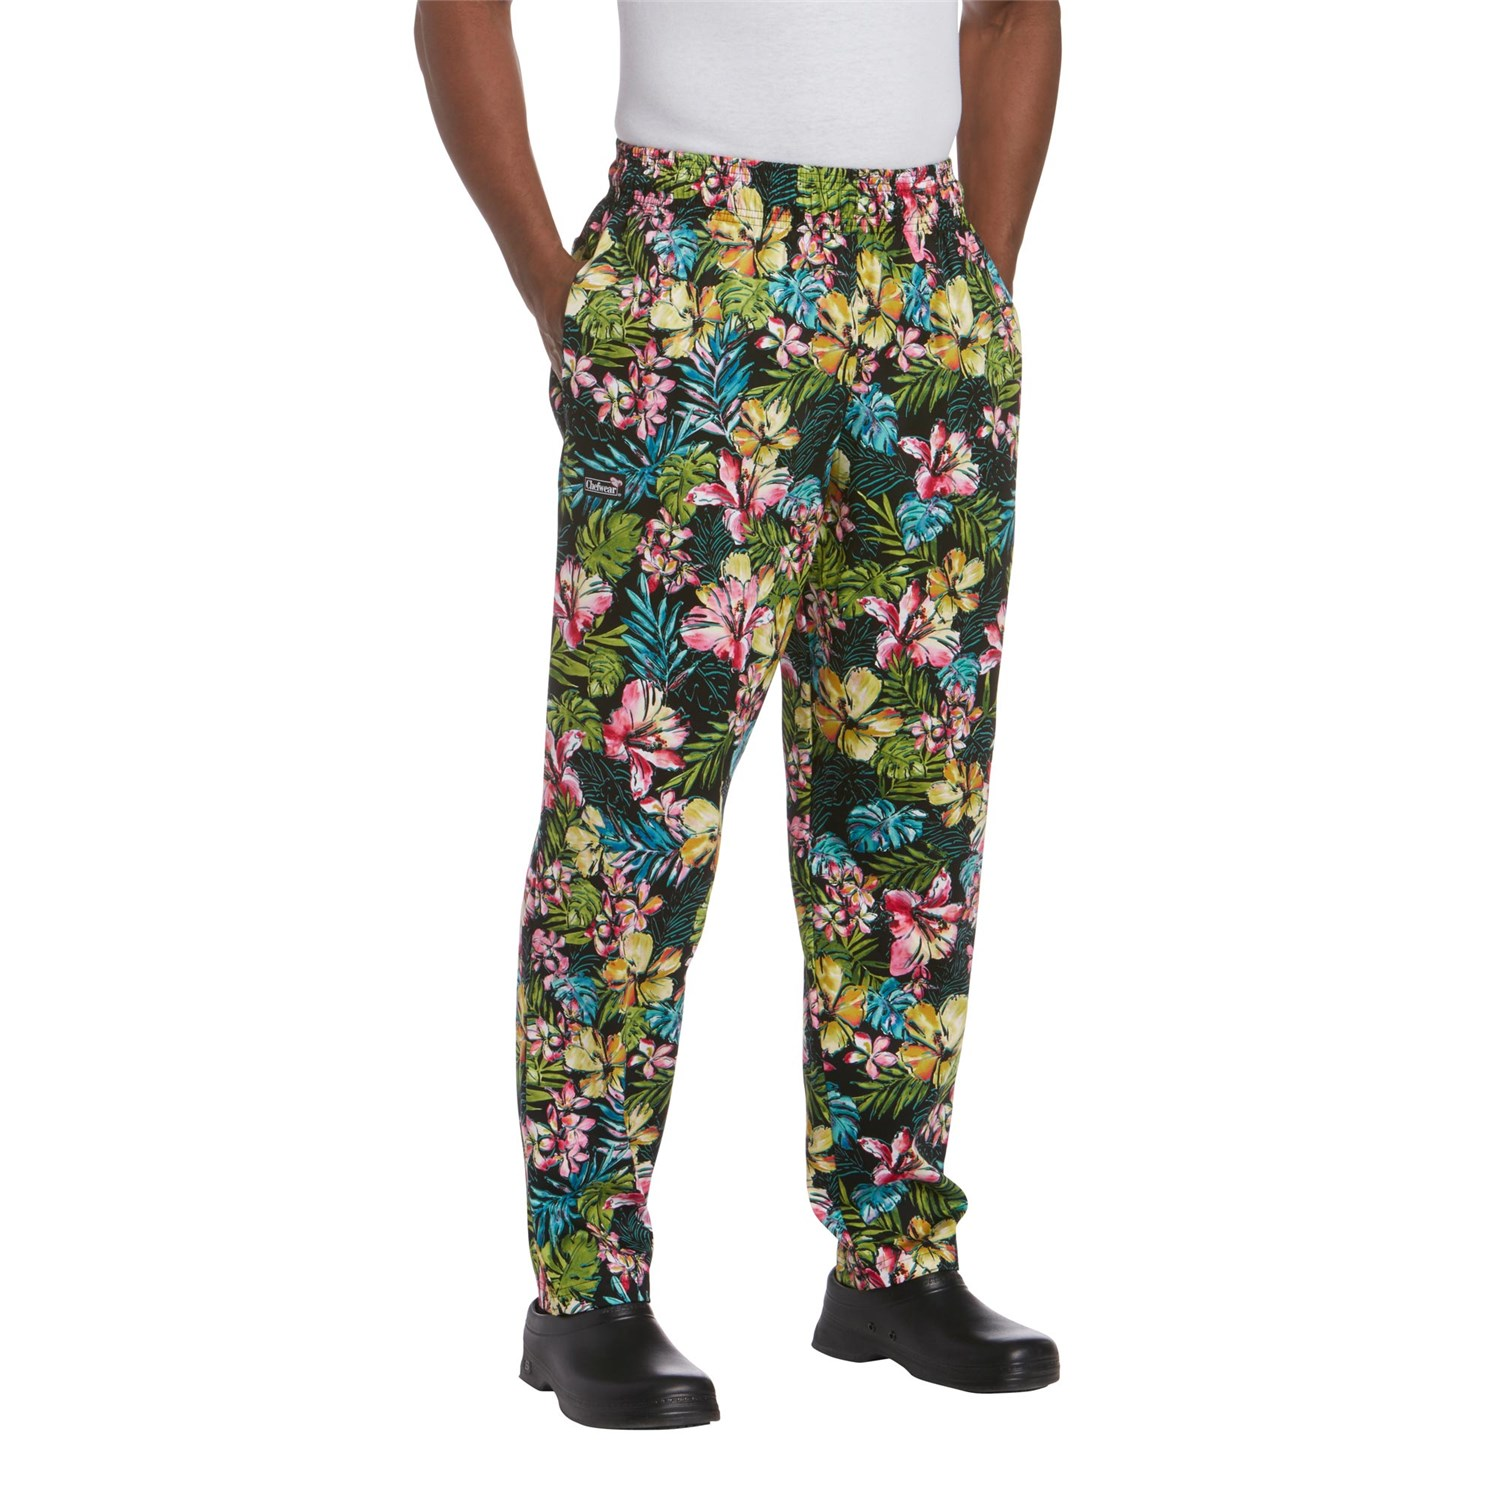 Baggy Cotton Chef Pants 3000  Chefwear